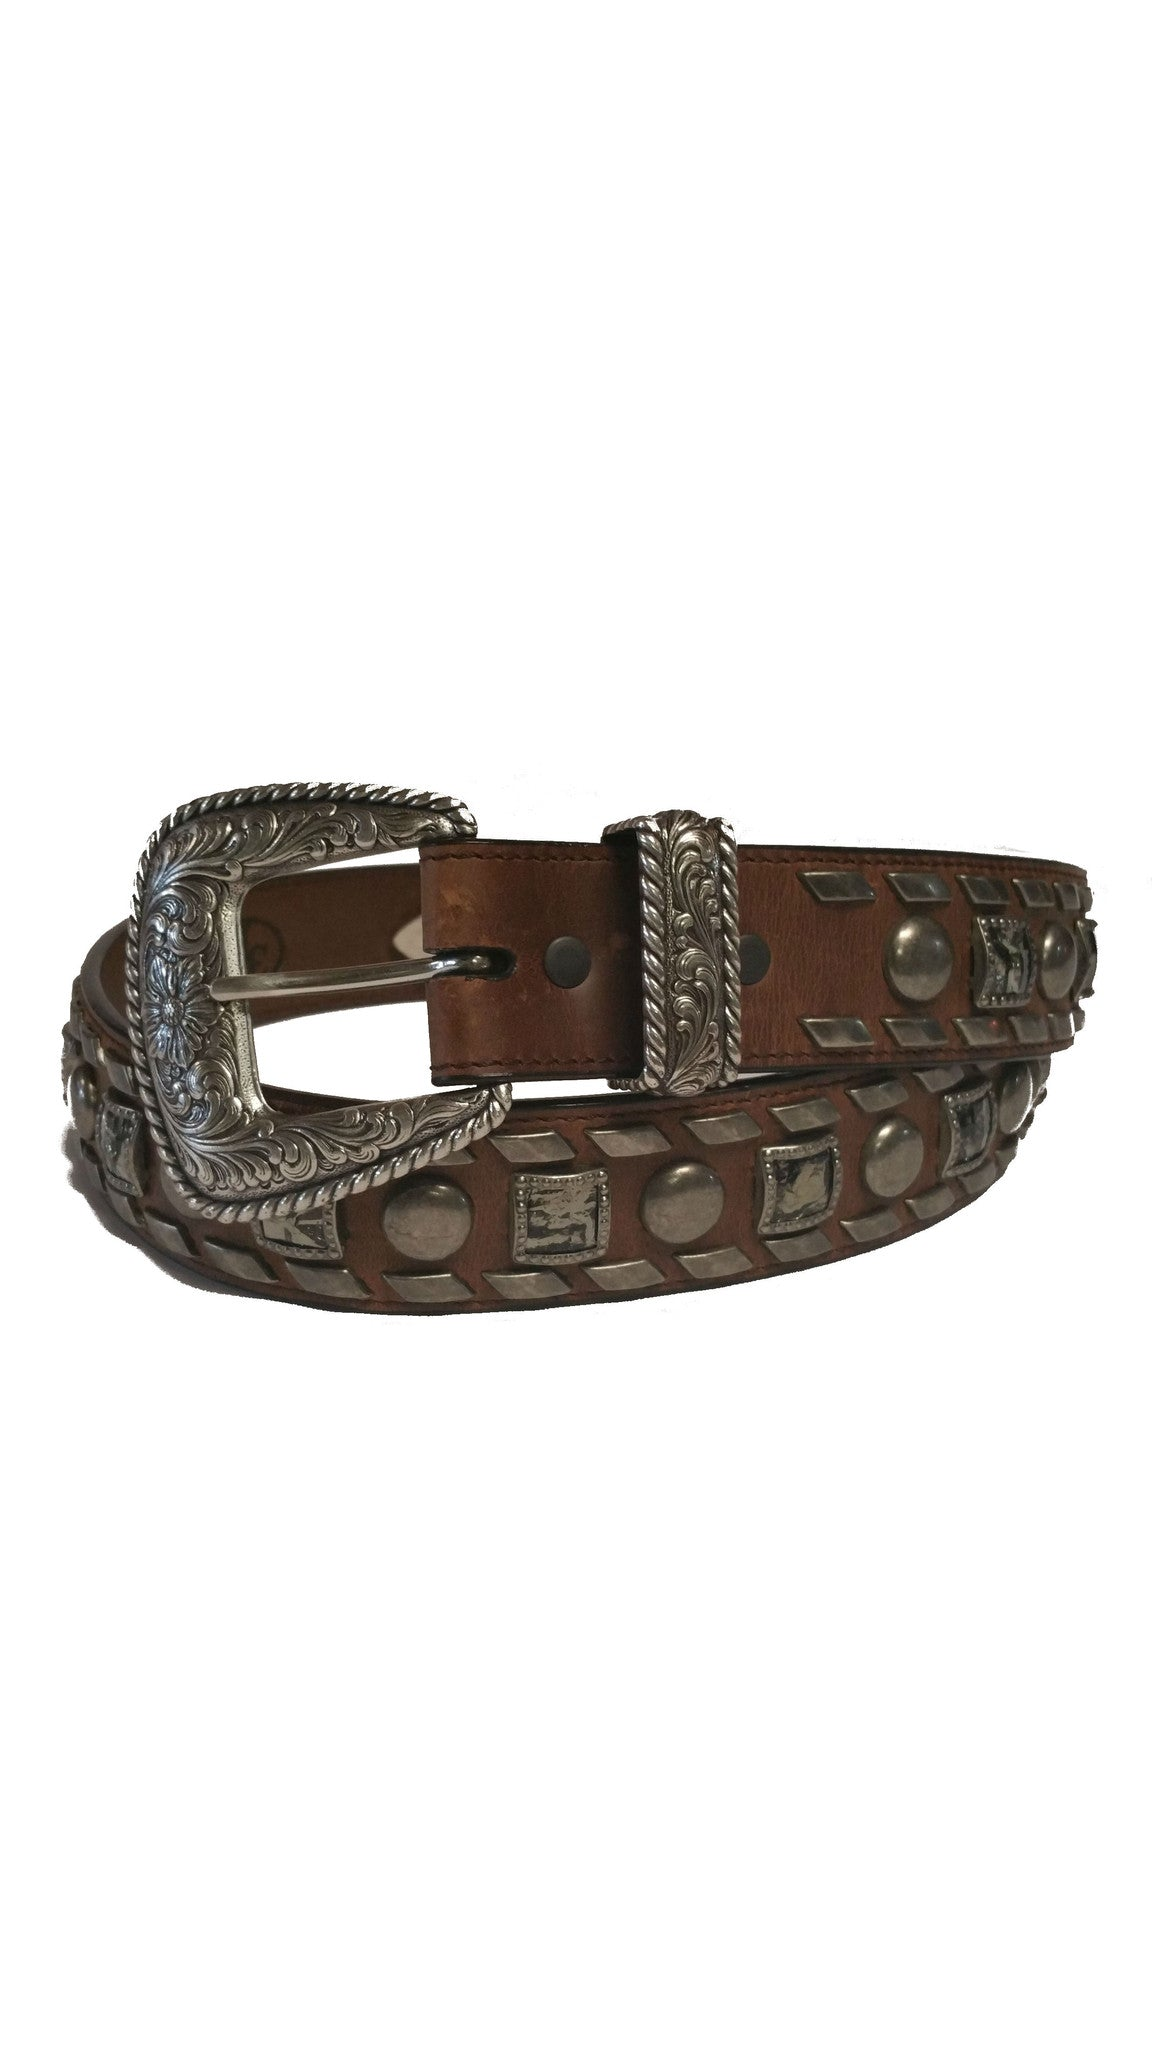 3D - Chocolate Brown Men's Western Fashion Belt - Kerlin's Western and Work Wear